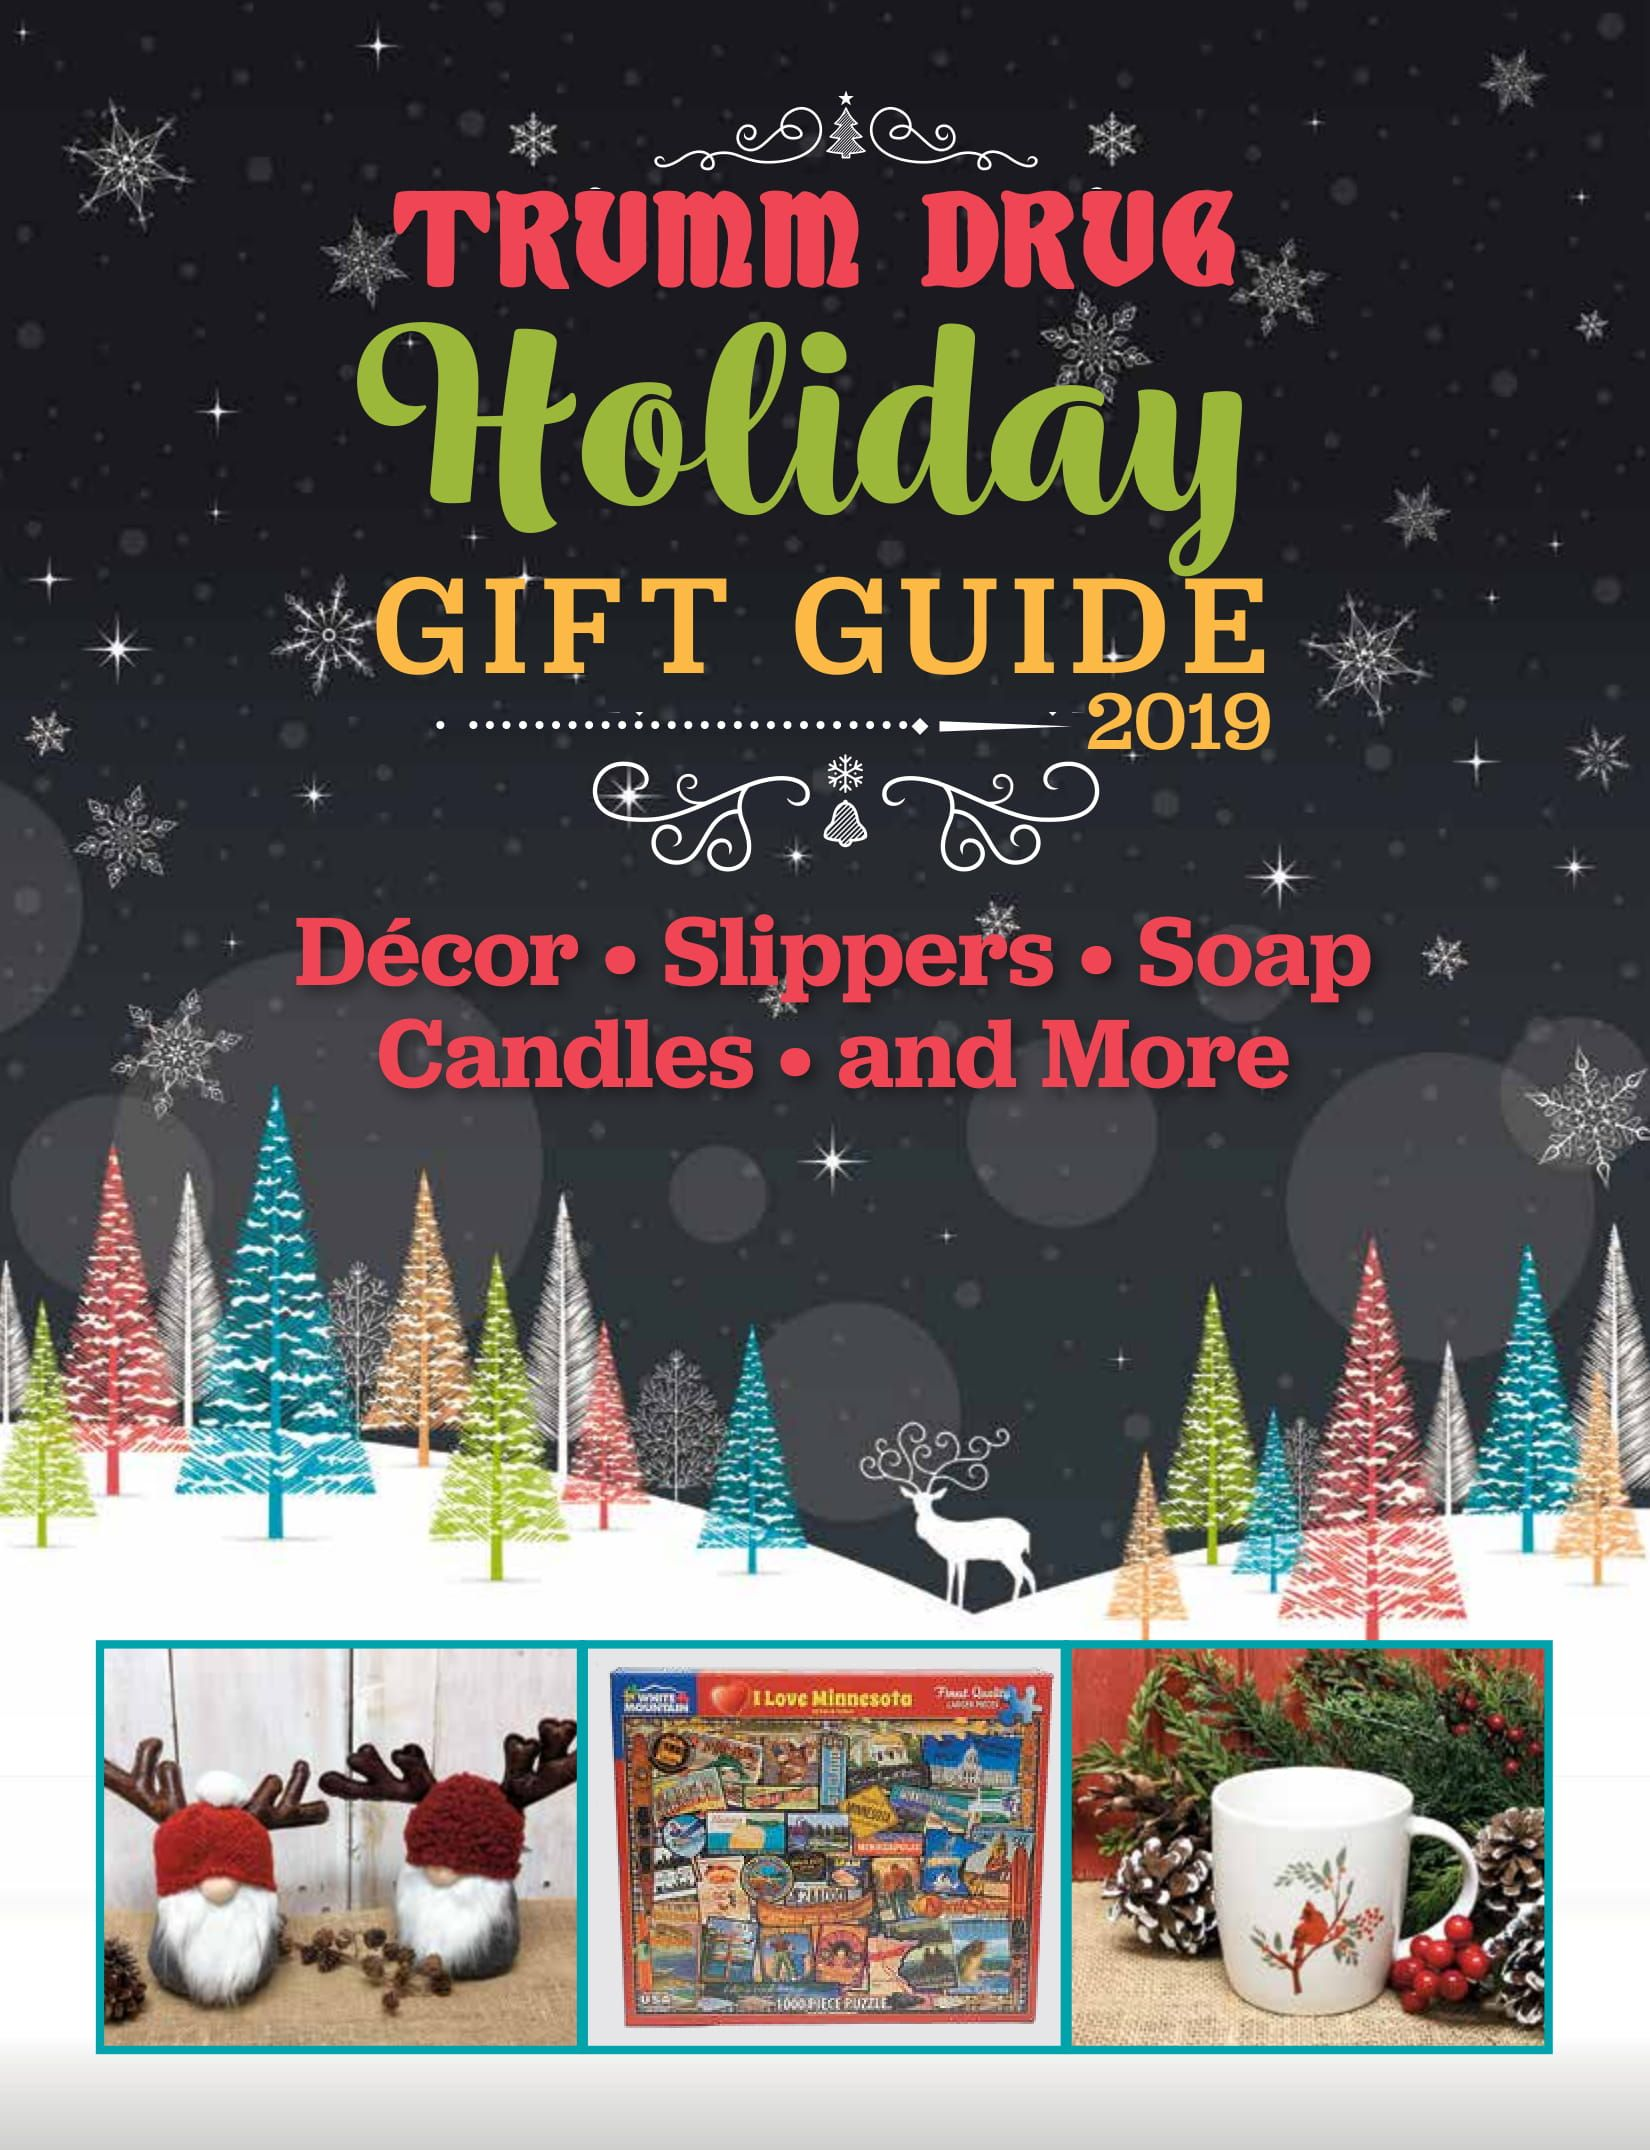 HolidayGiftGuide_2019_LowRes-01.jpg